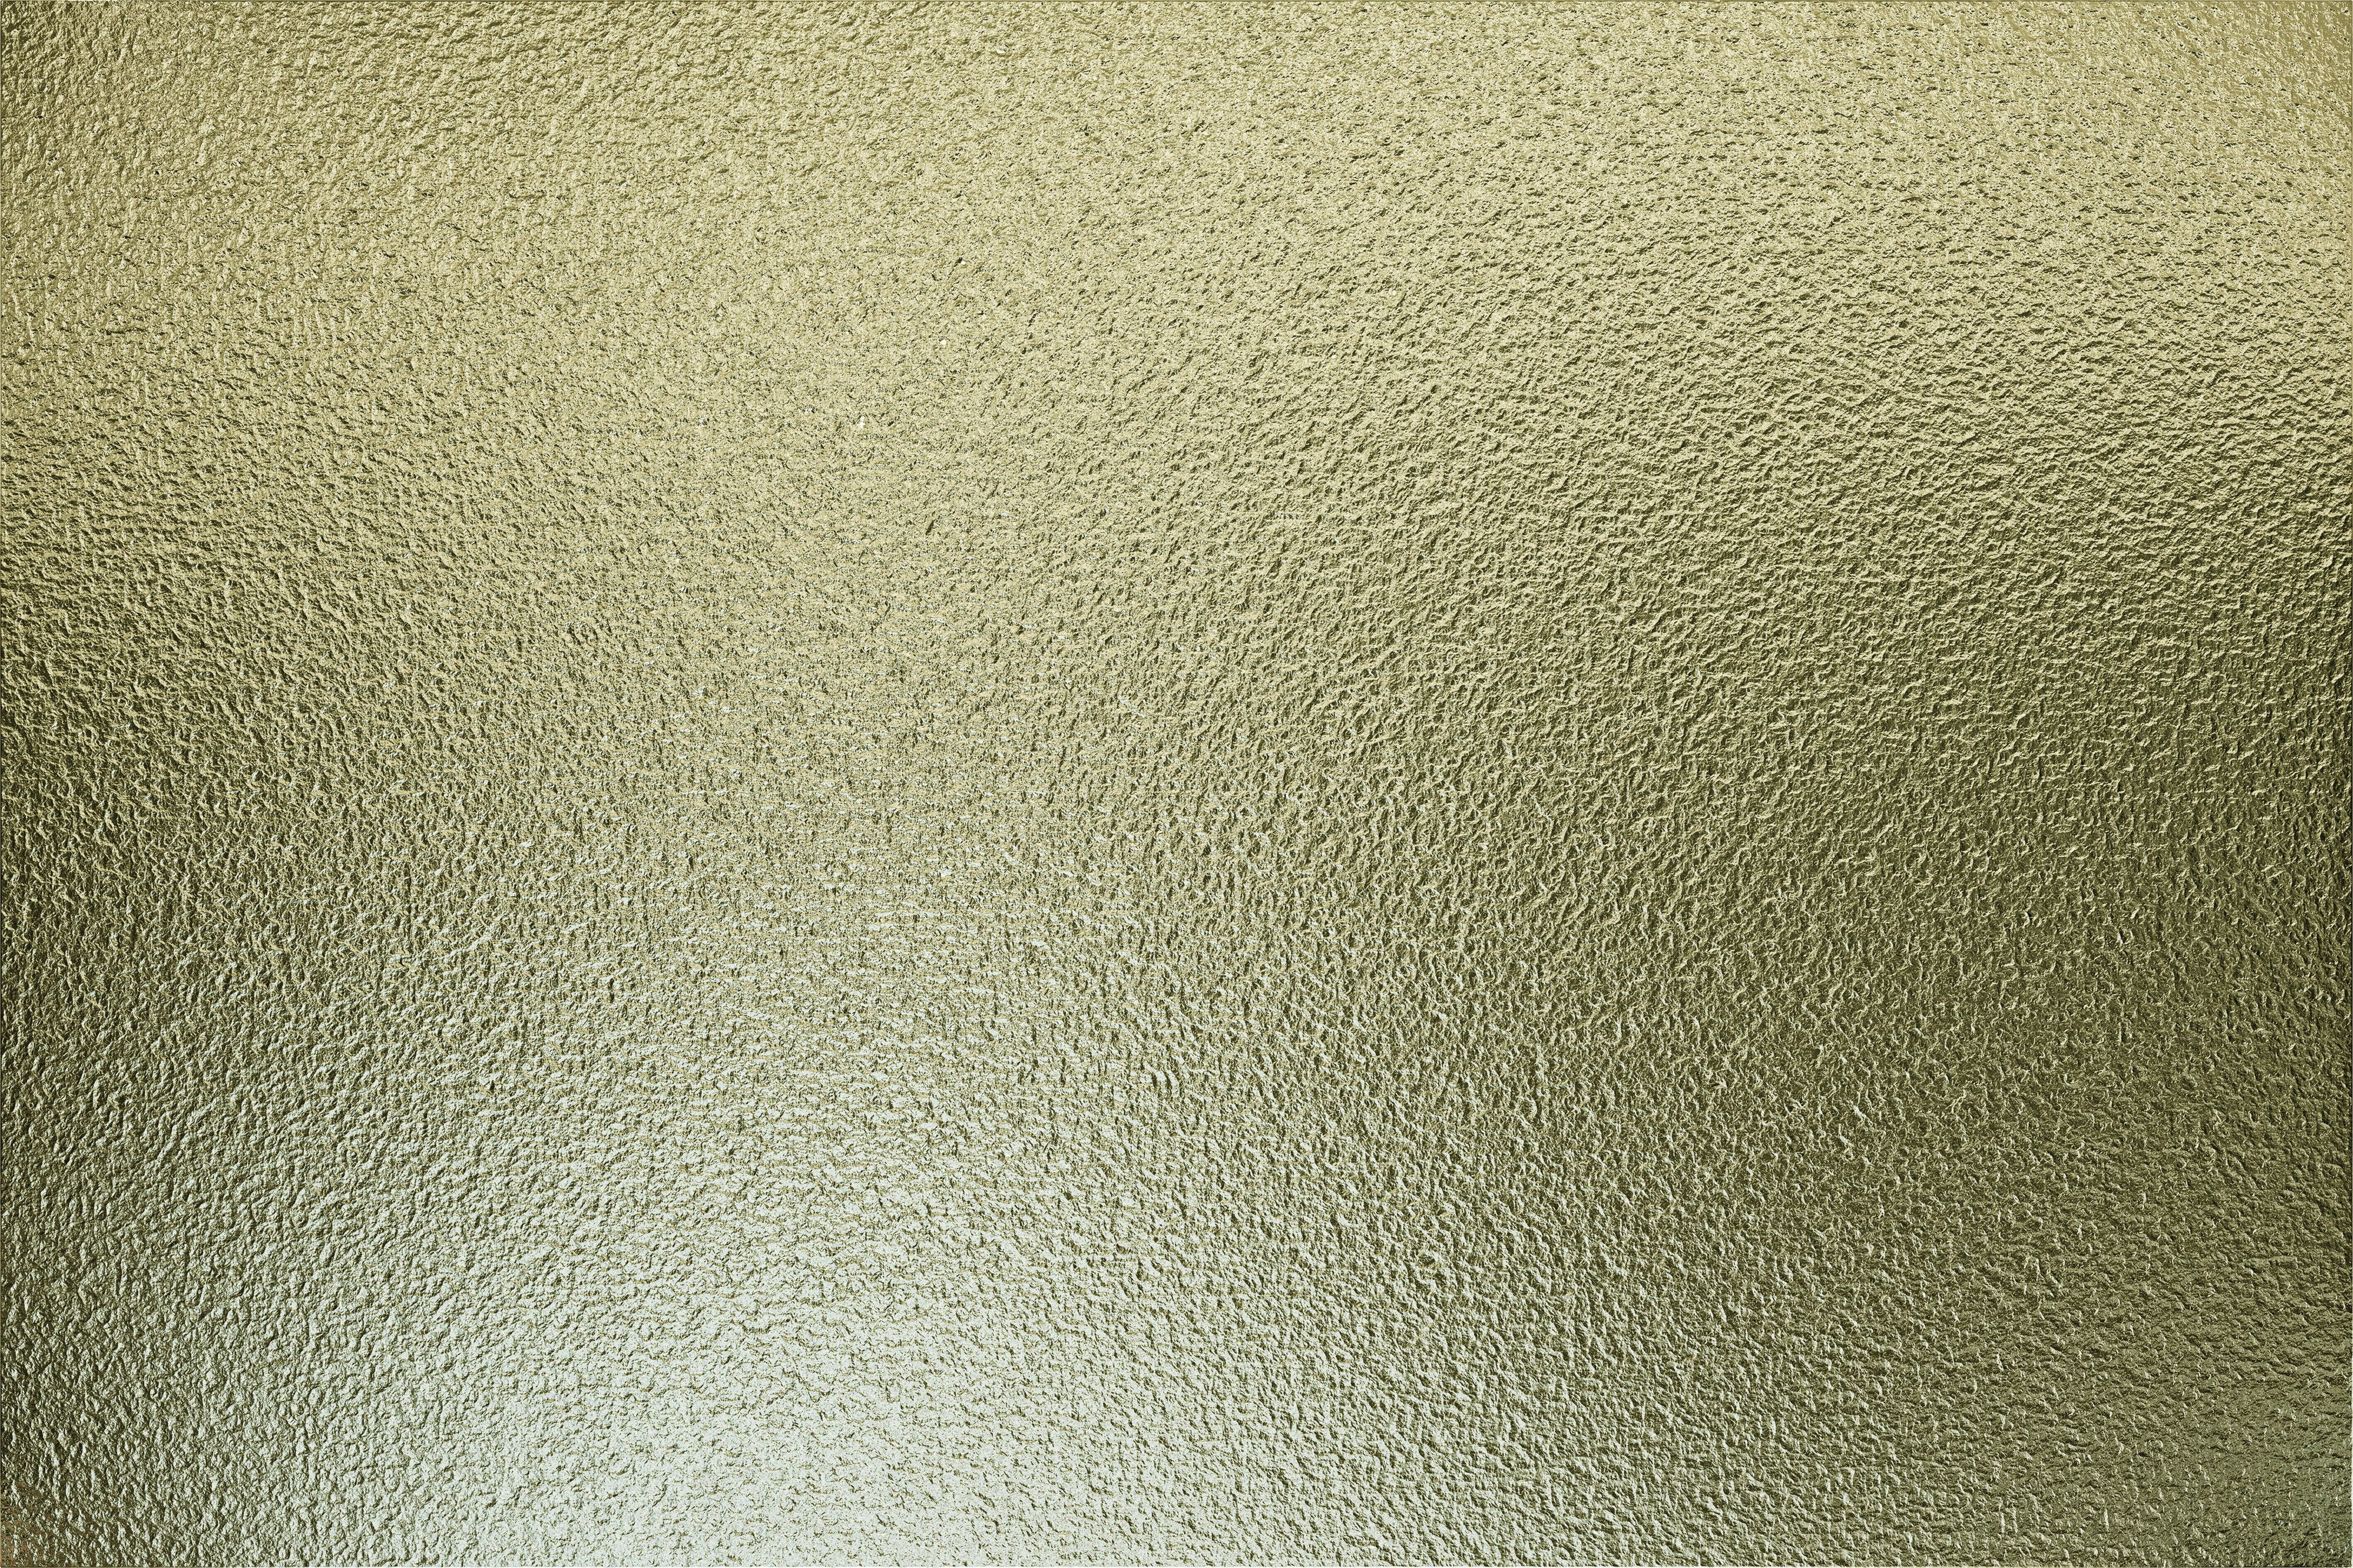 Metallic Texture of a Large Sheet of Shiny Metal Foil ...